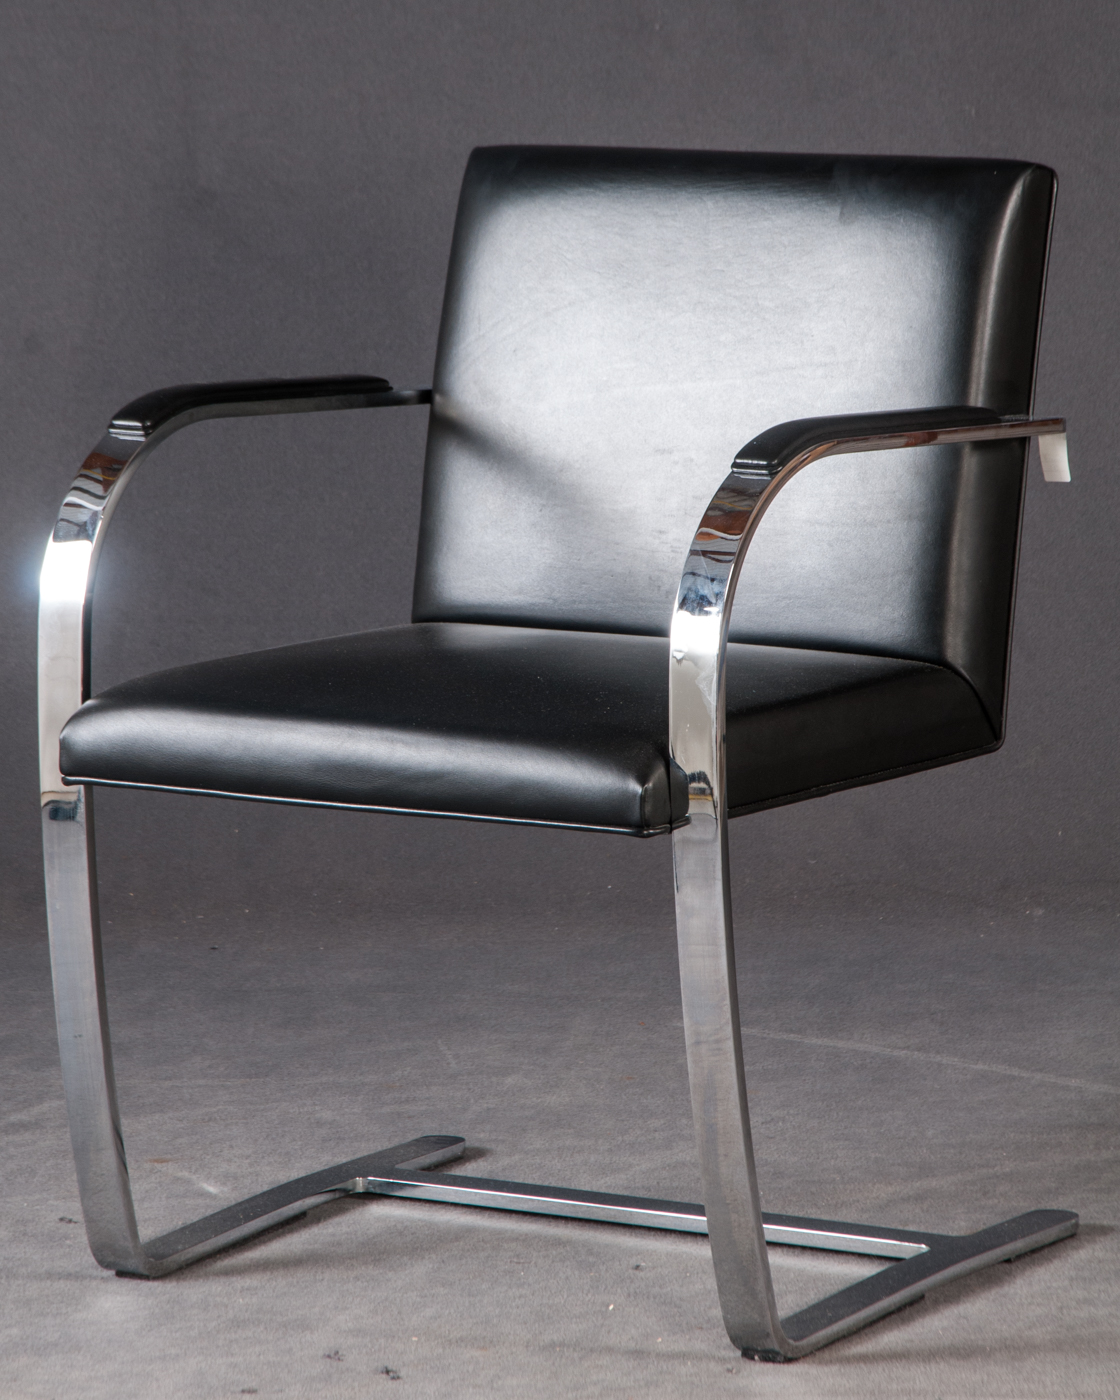 Ludwig Mies van der Rohe, 6 chairs/cantilevered chairs/armchairs 'Brno' model 'MR50' for Knoll International (6)